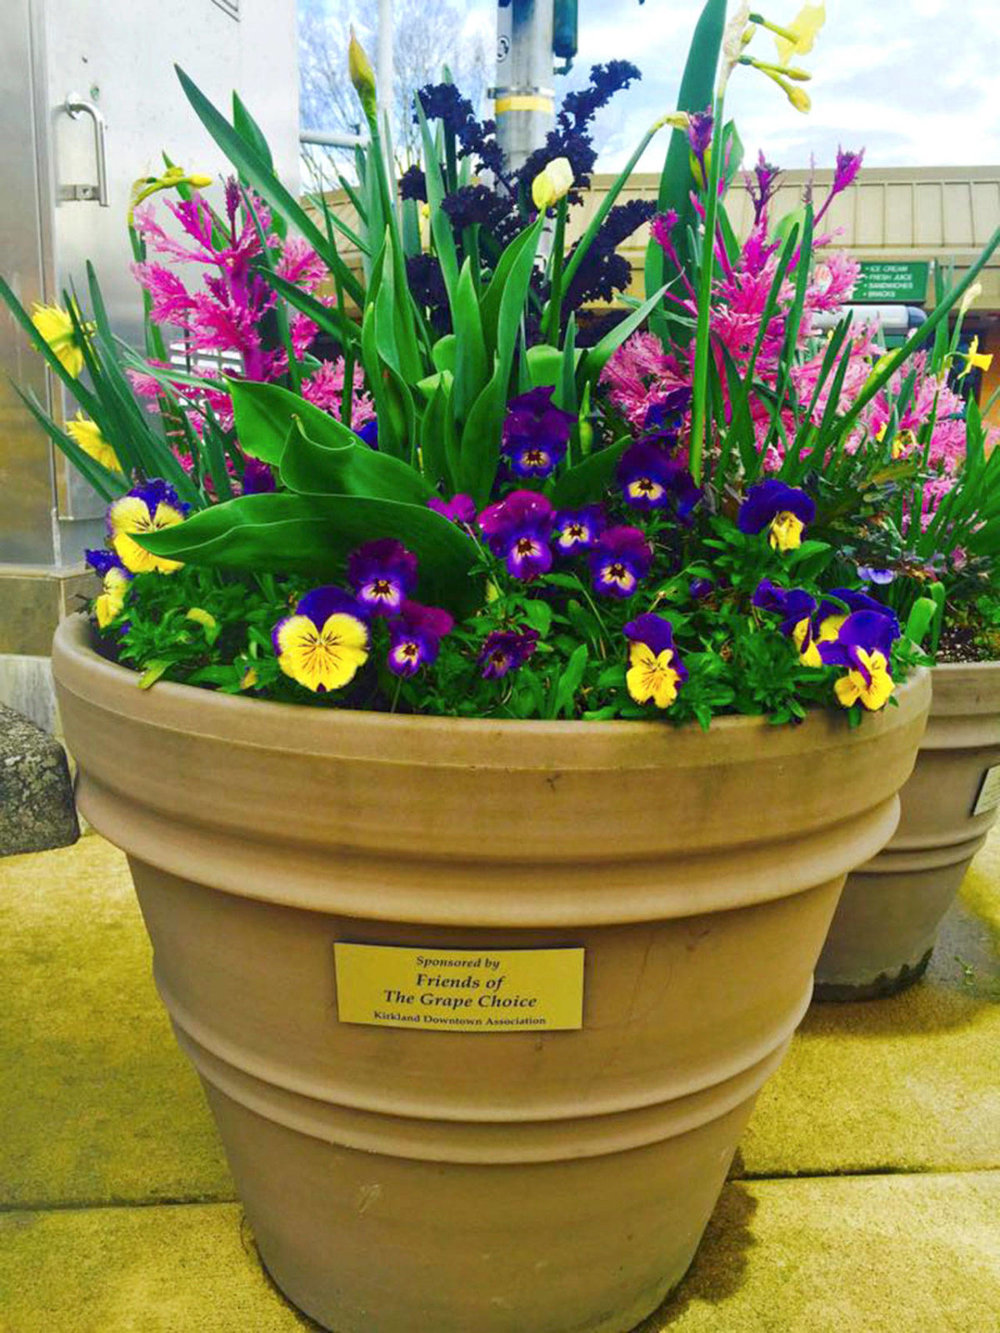 A self-watering flower pot in Downtown Kirkland. Courtesy photo